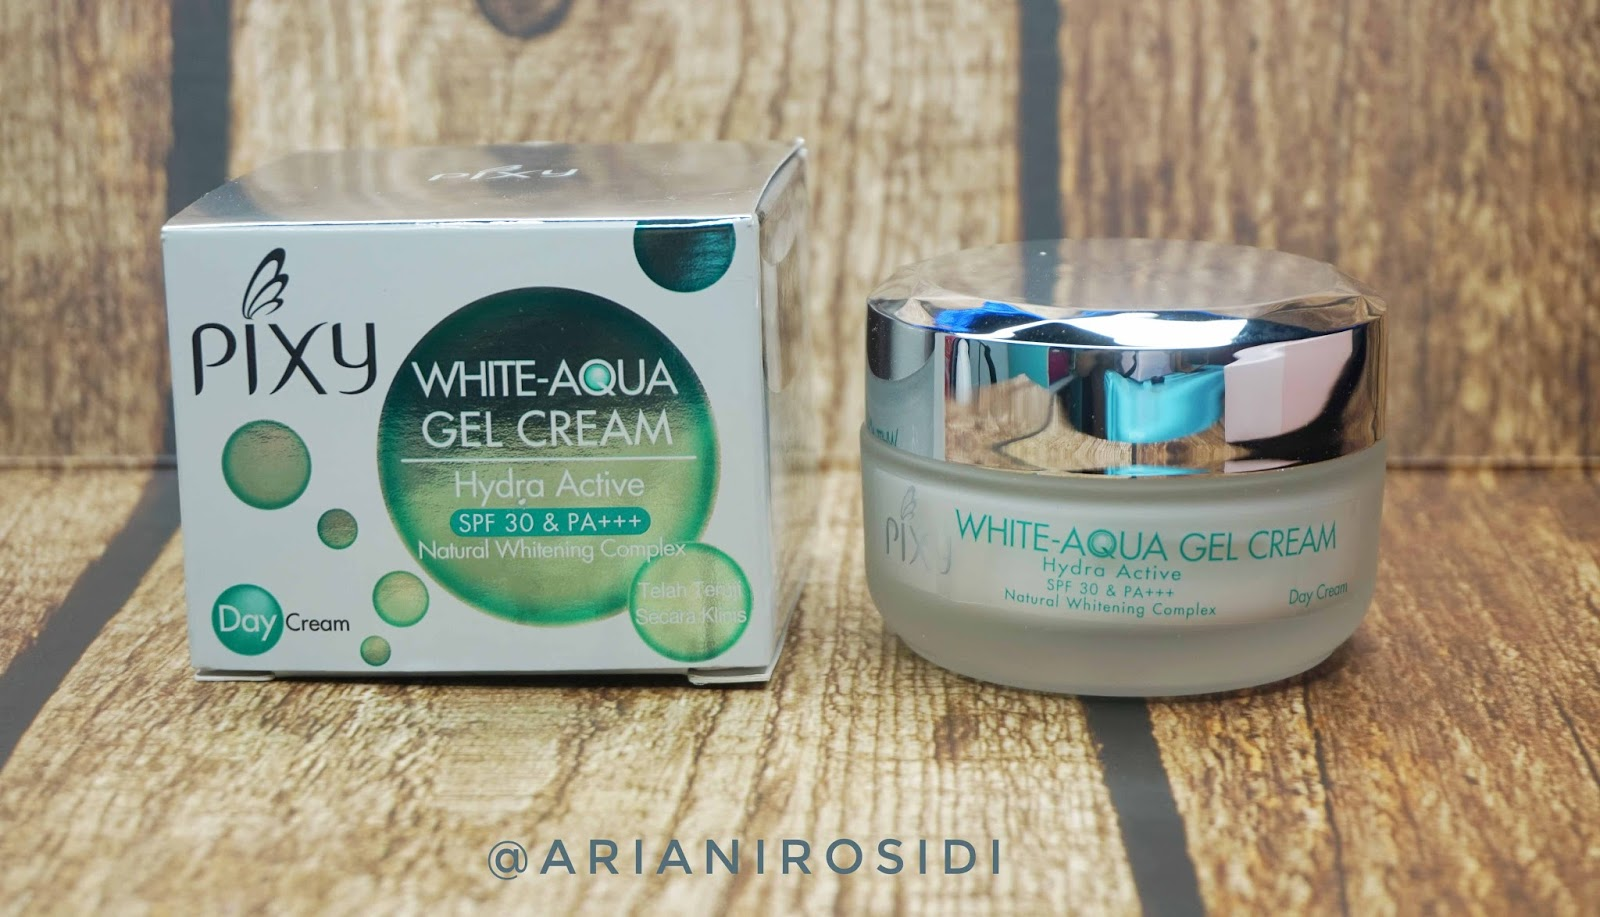 pixy white aqua gel cream